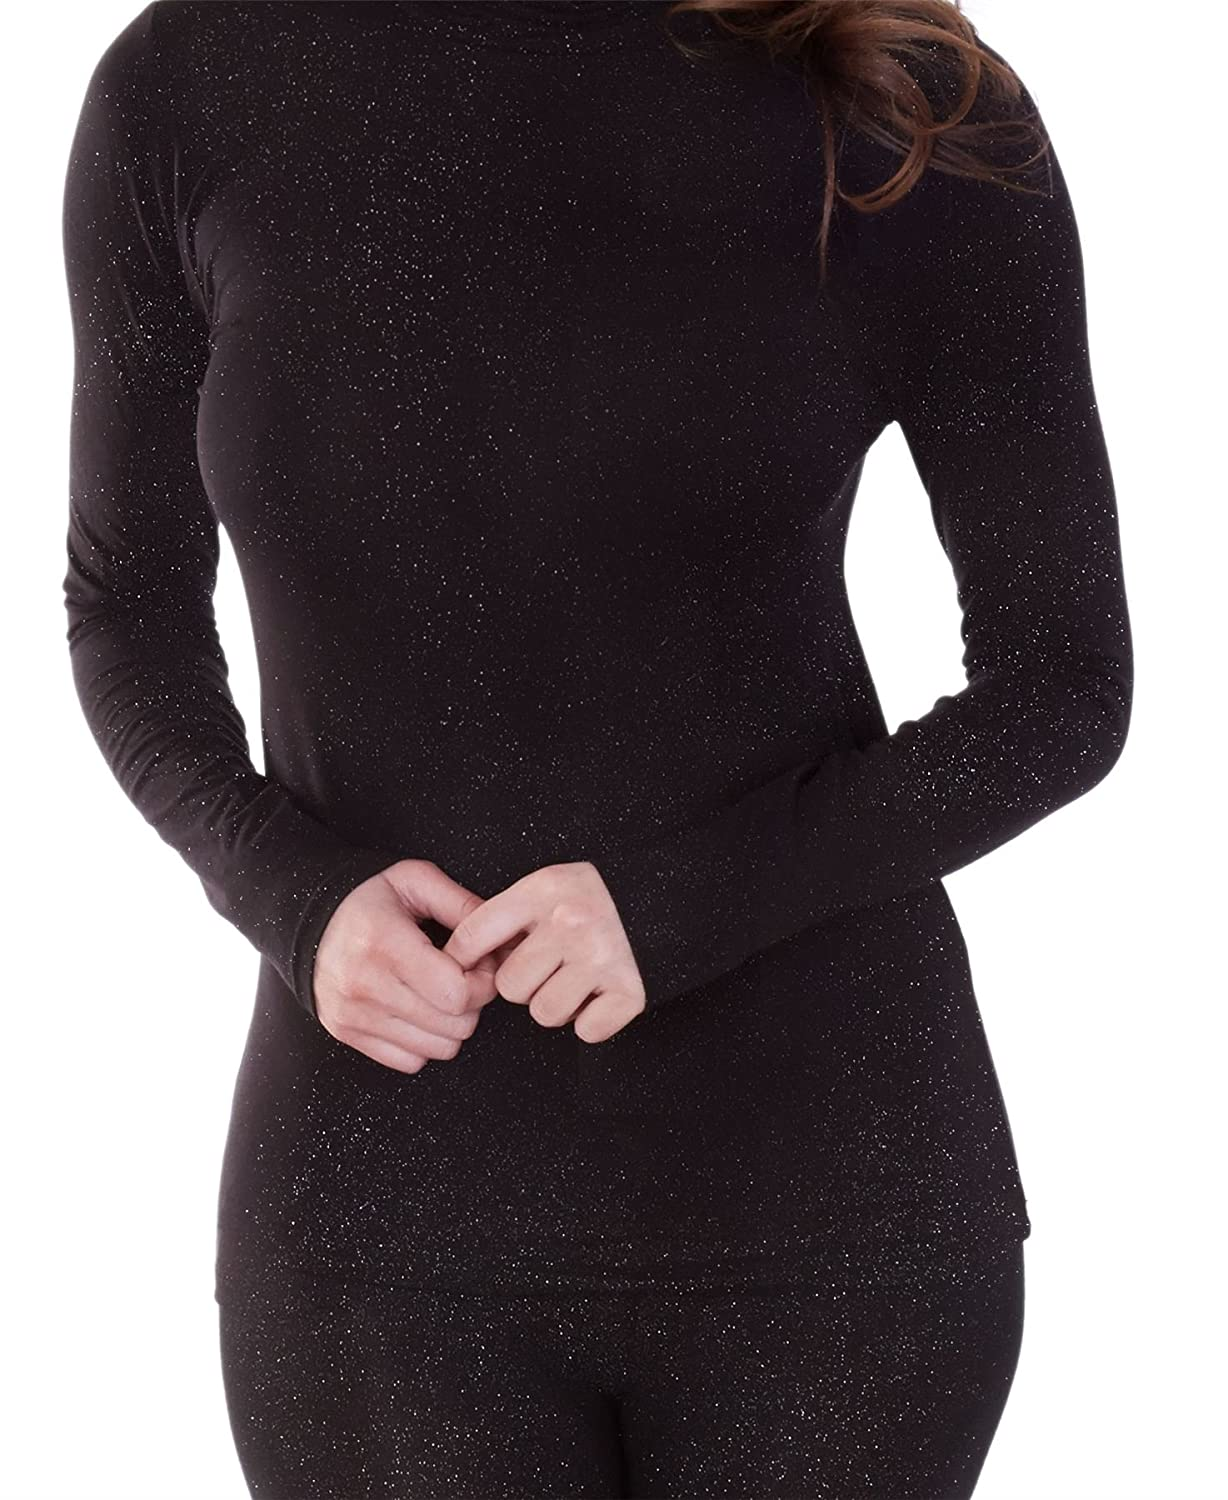 Womens Charnos Second Skin Thermalwear Sparkly Long Sleeve Top 58436 Black Silver Mix